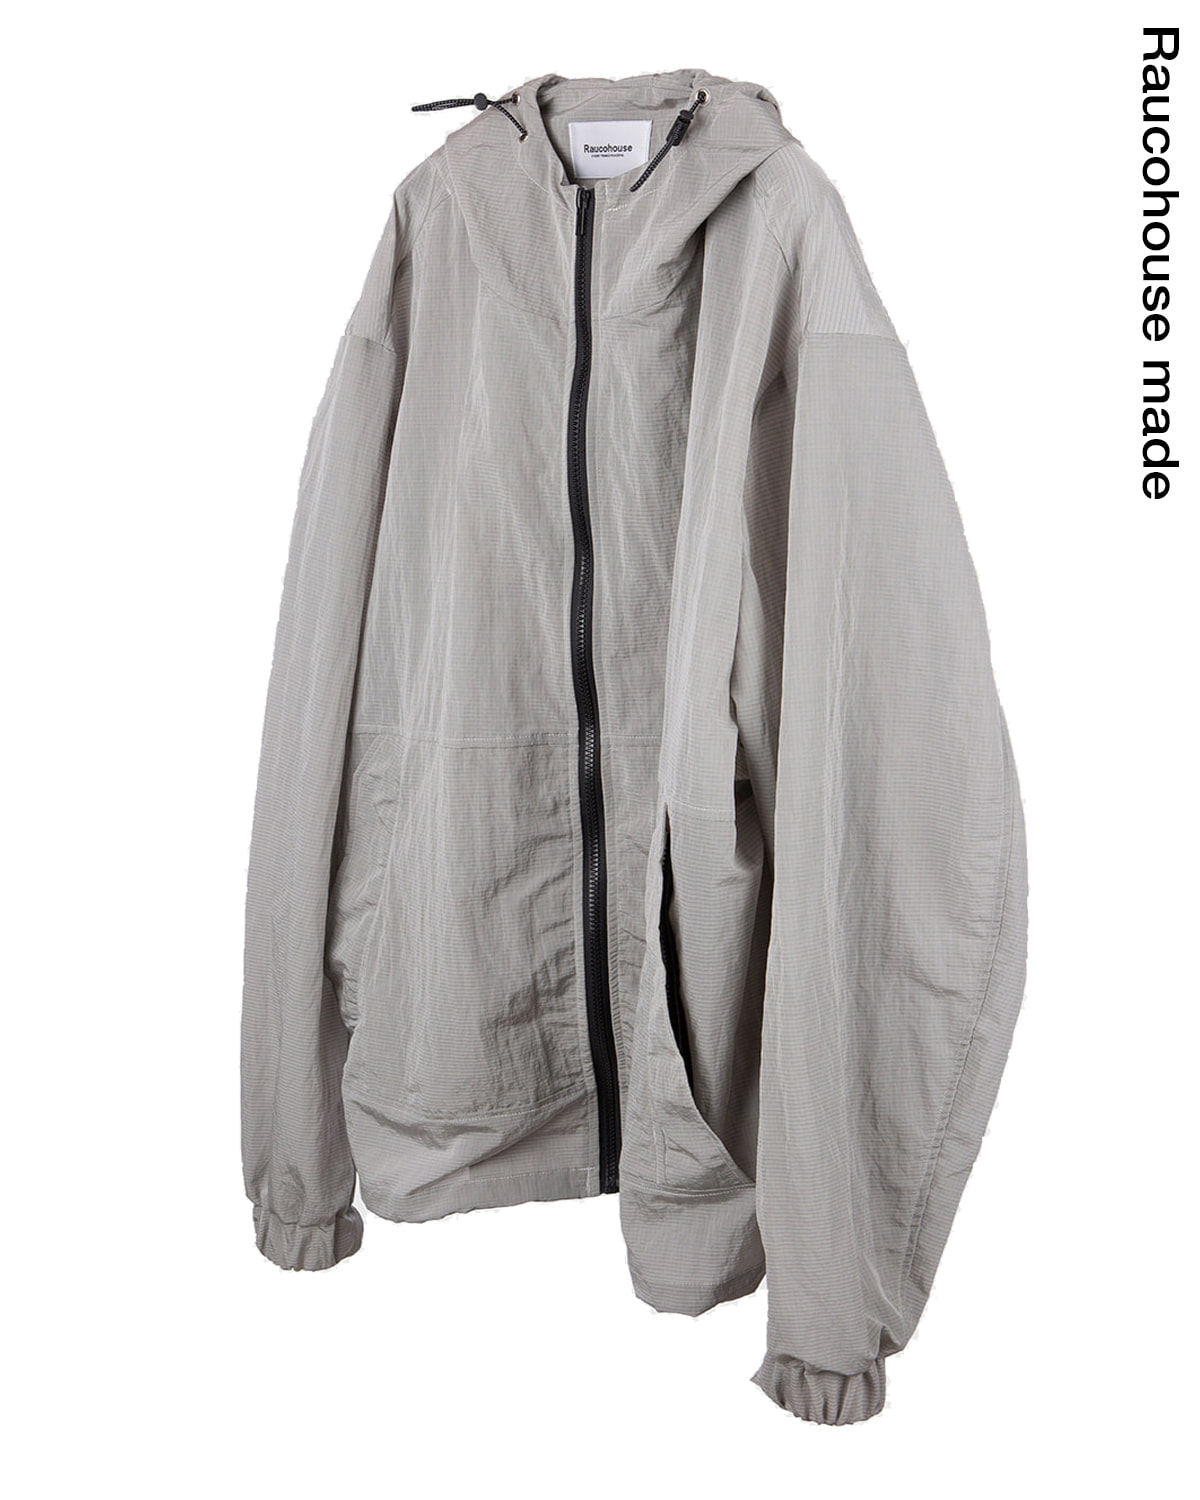 raucohouse-OUTDOOR NYLON HOODED JACKET - METAL GRAY - RAUCO HOUSE♡韓國男裝外套